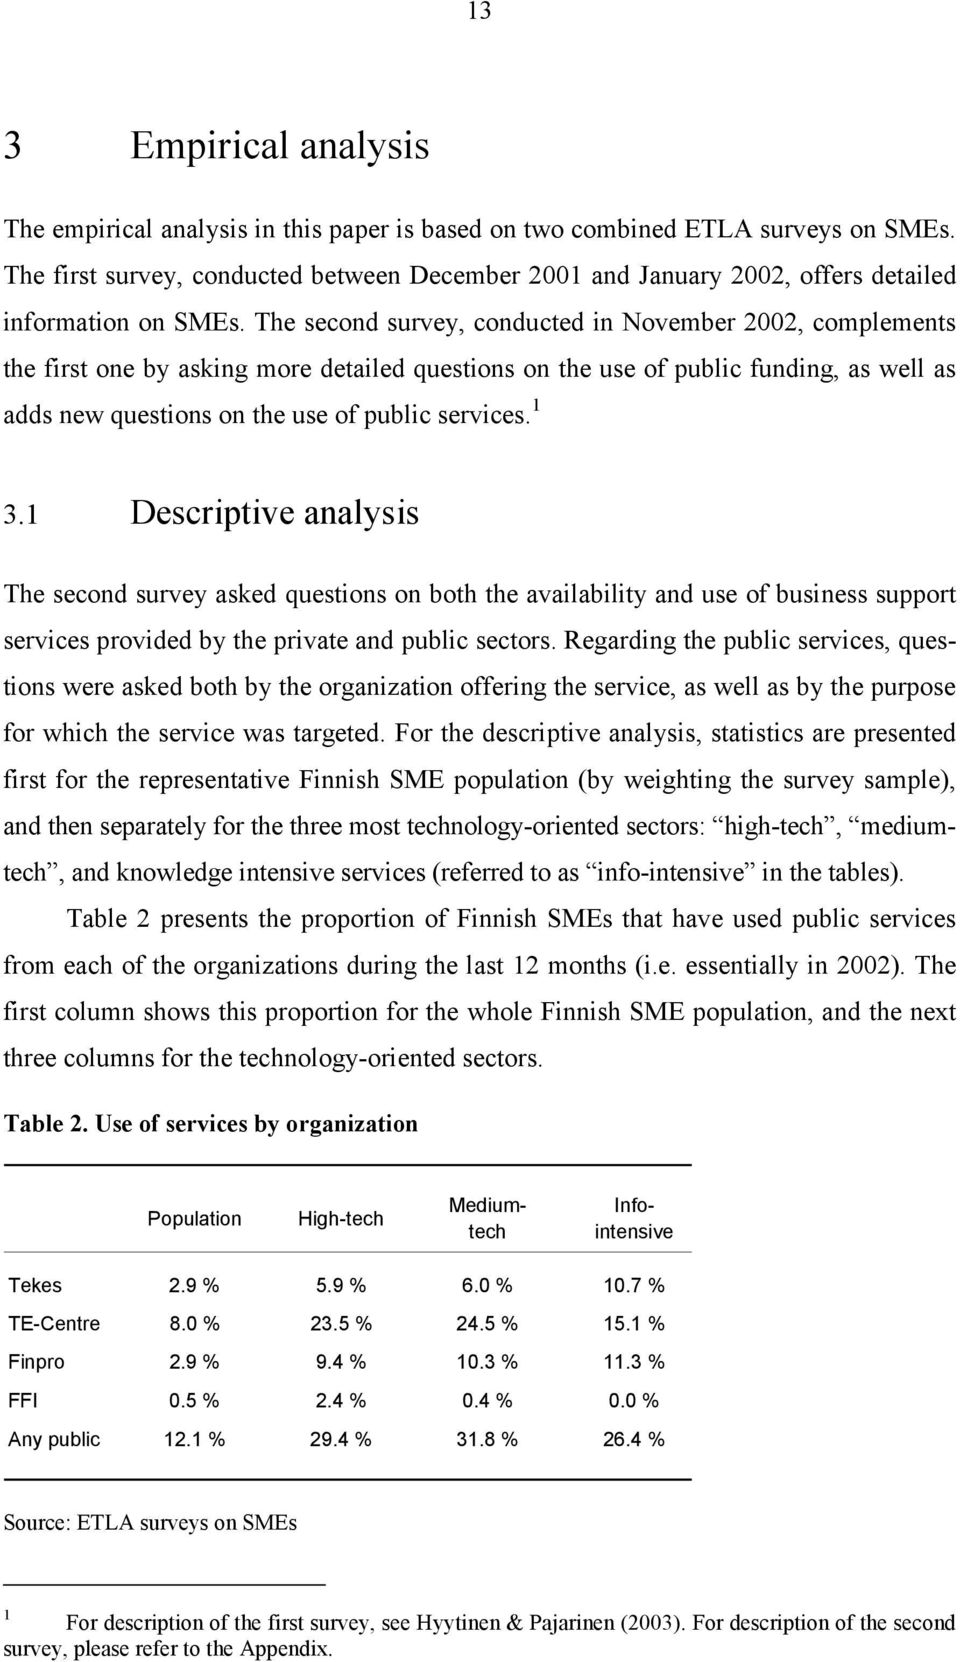 The second survey, conducted in November 2002, complements the first one by asking more detailed questions on the use of public funding, as well as adds new questions on the use of public services.